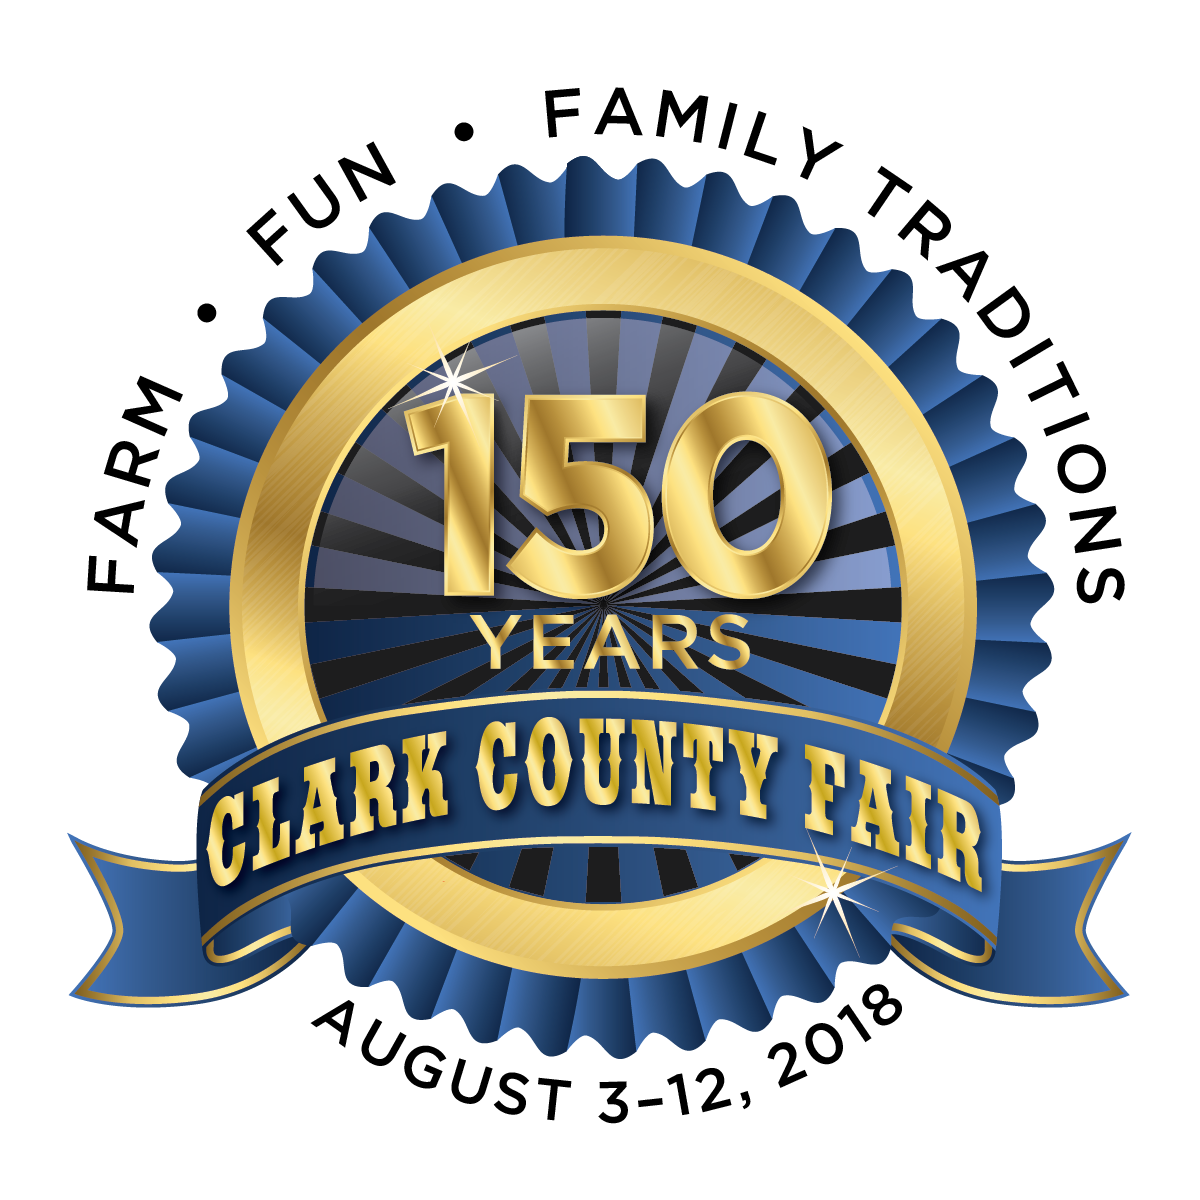 Clark County Fair 150th Year